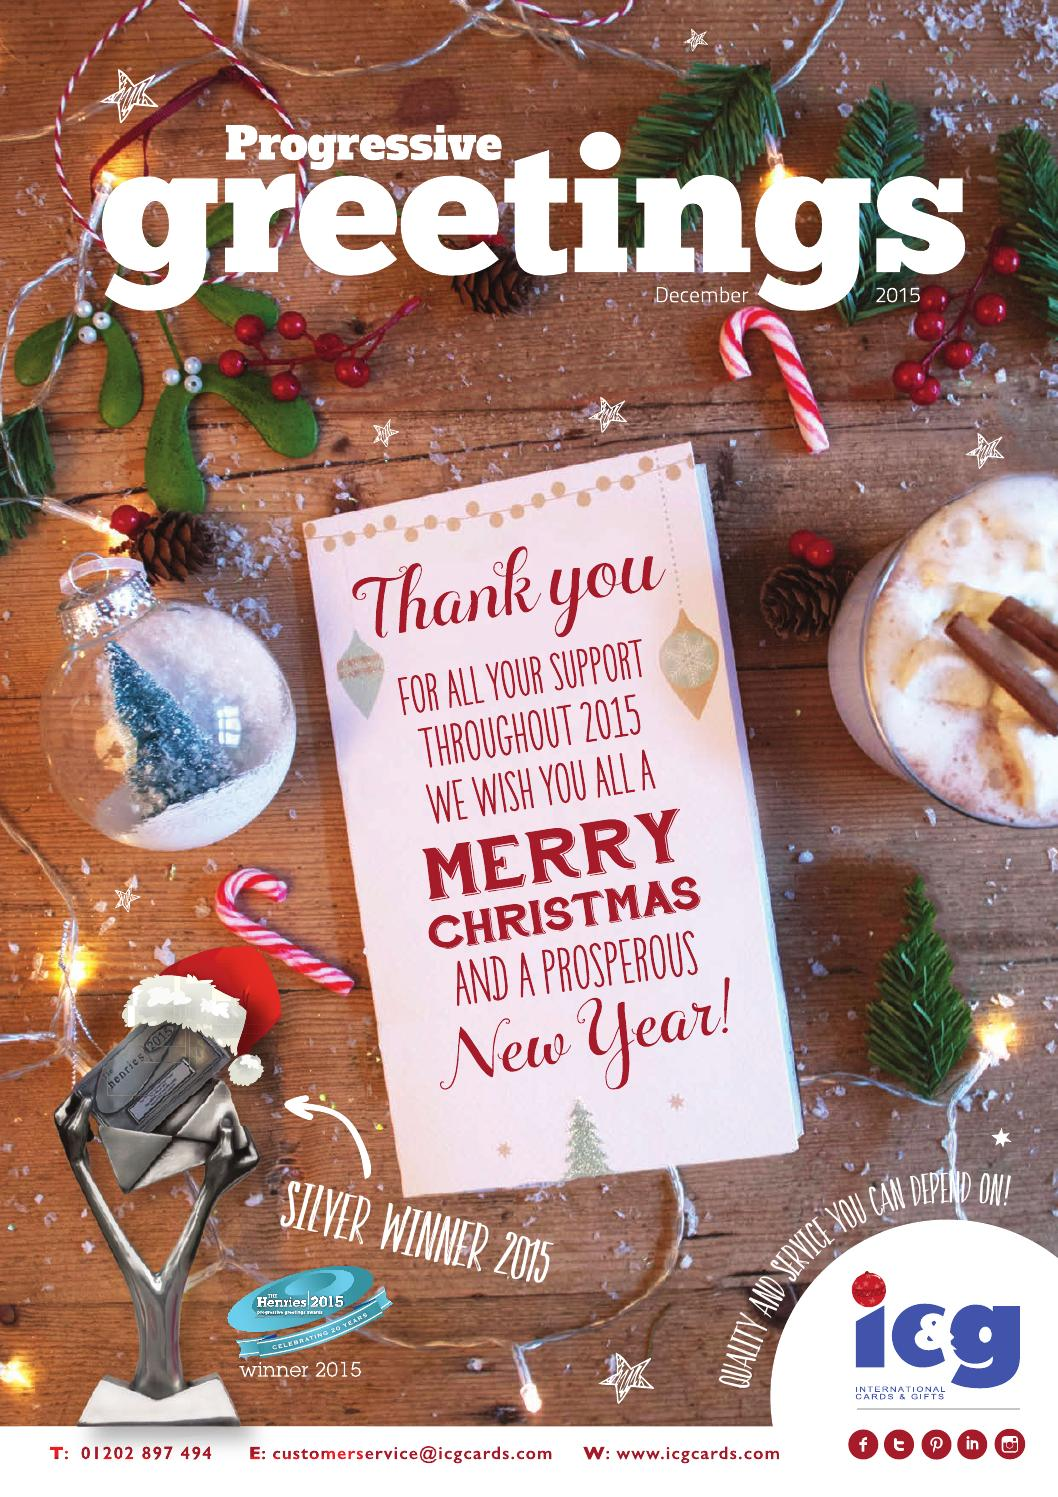 Progressive Greetings December 2015 by Max Publishing - issuu